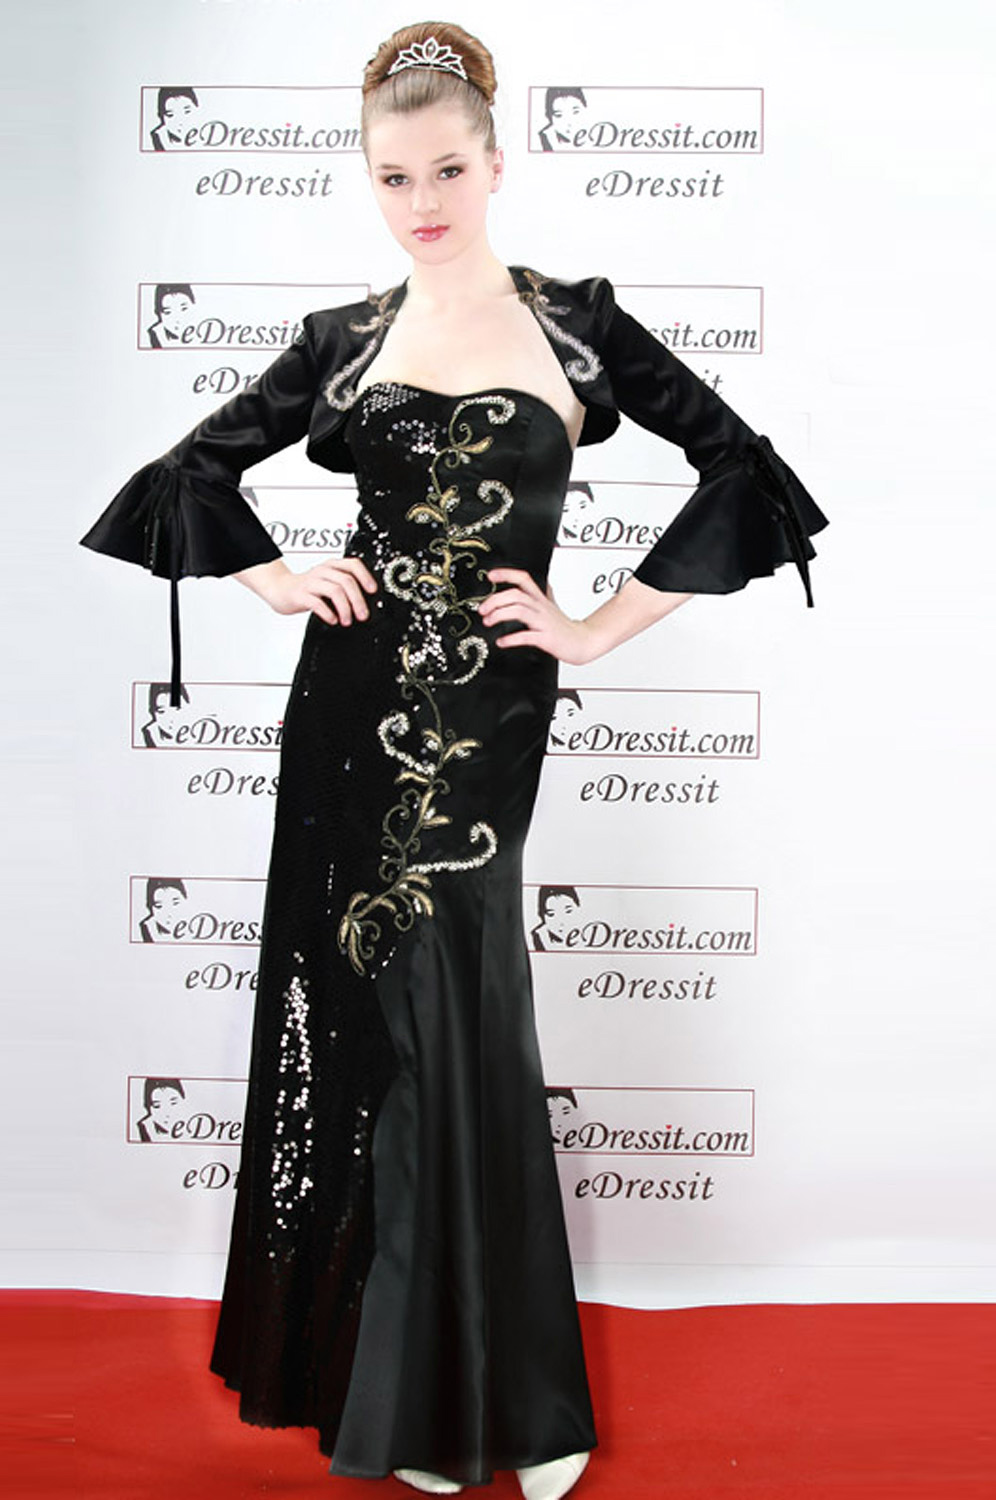 eDressit Black Elegant Prom Gown Evening Dress (00060800)